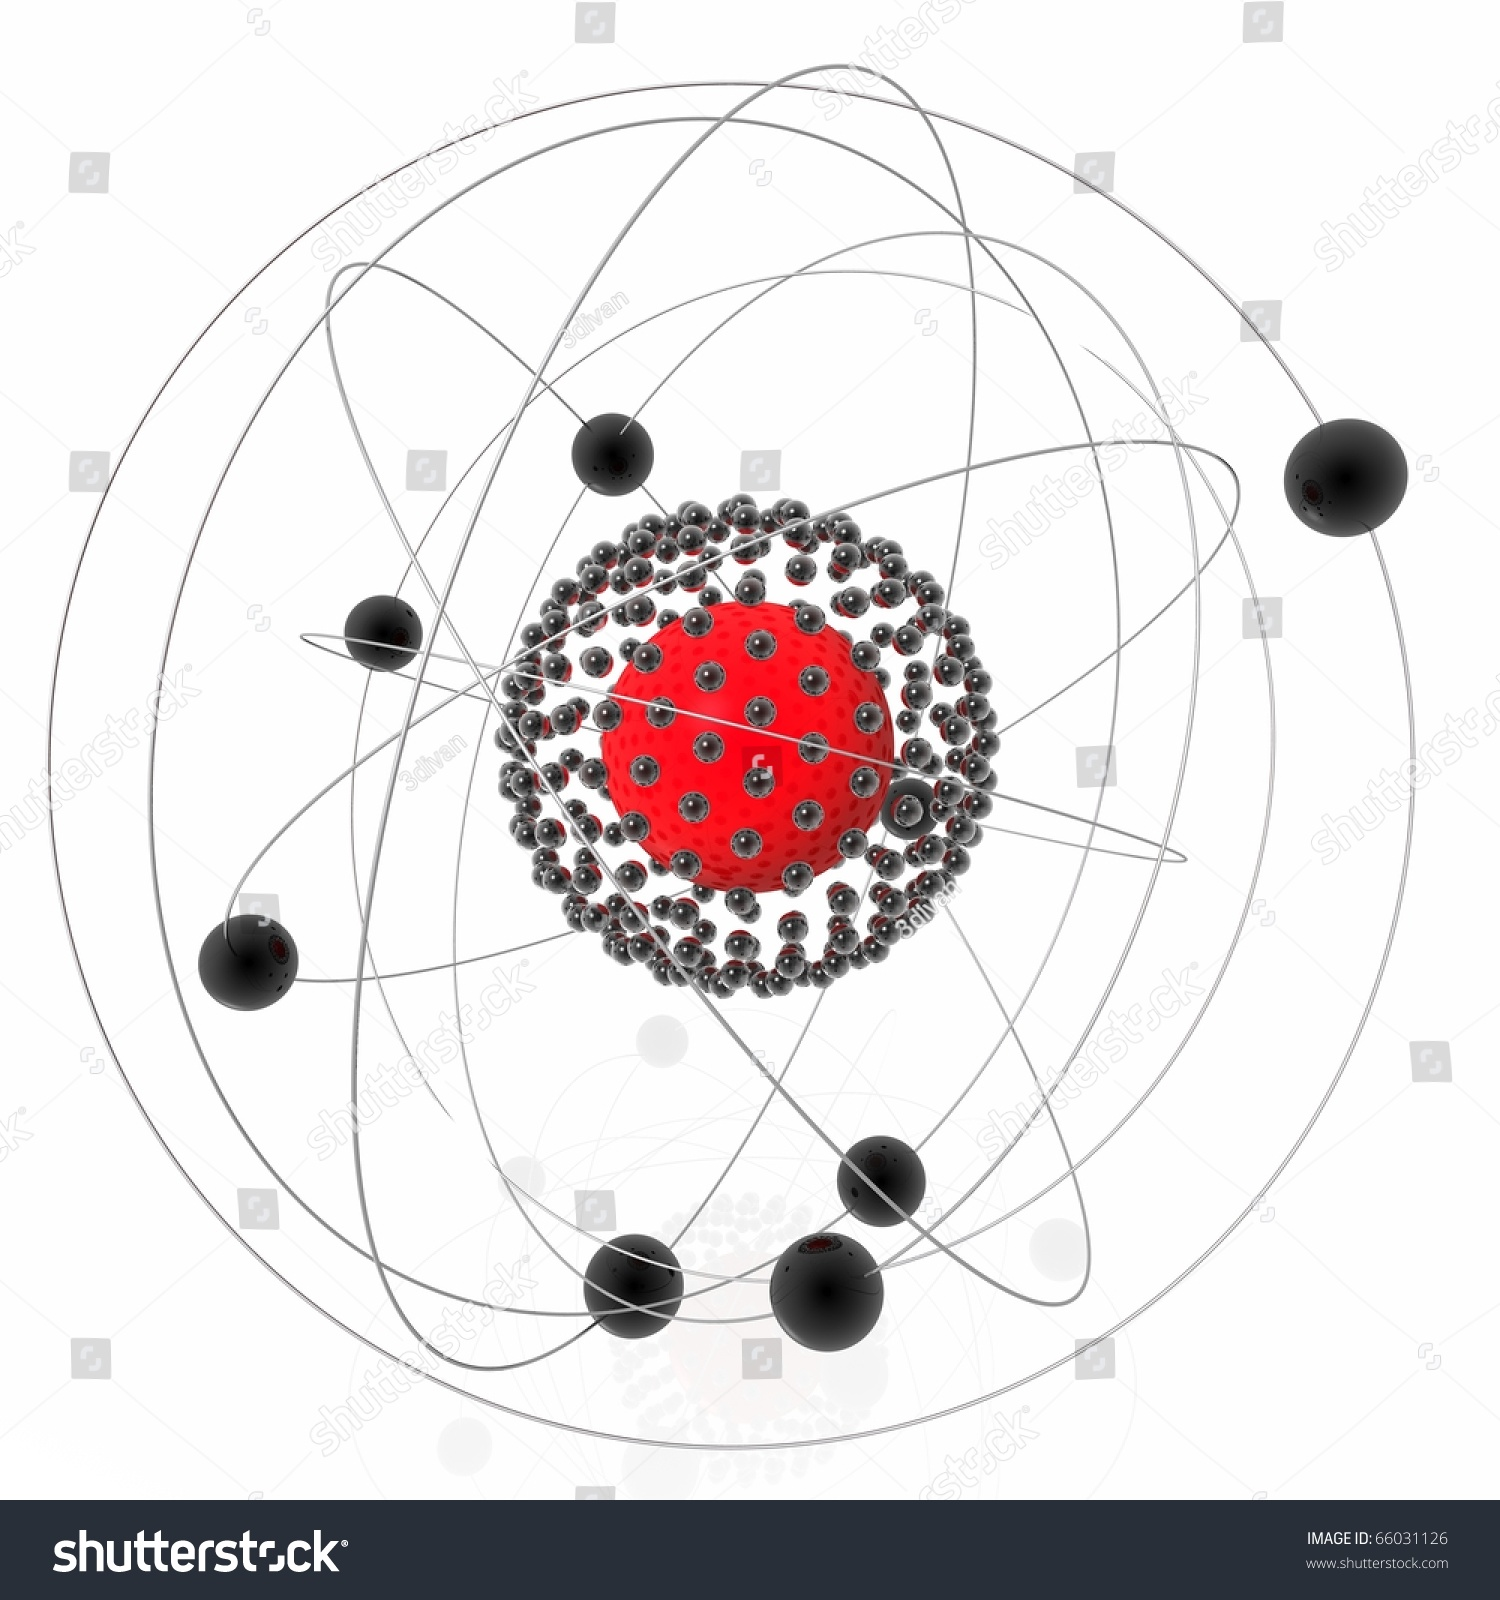 Schematic Atomic Structure Spheres Rings Stock Illustration